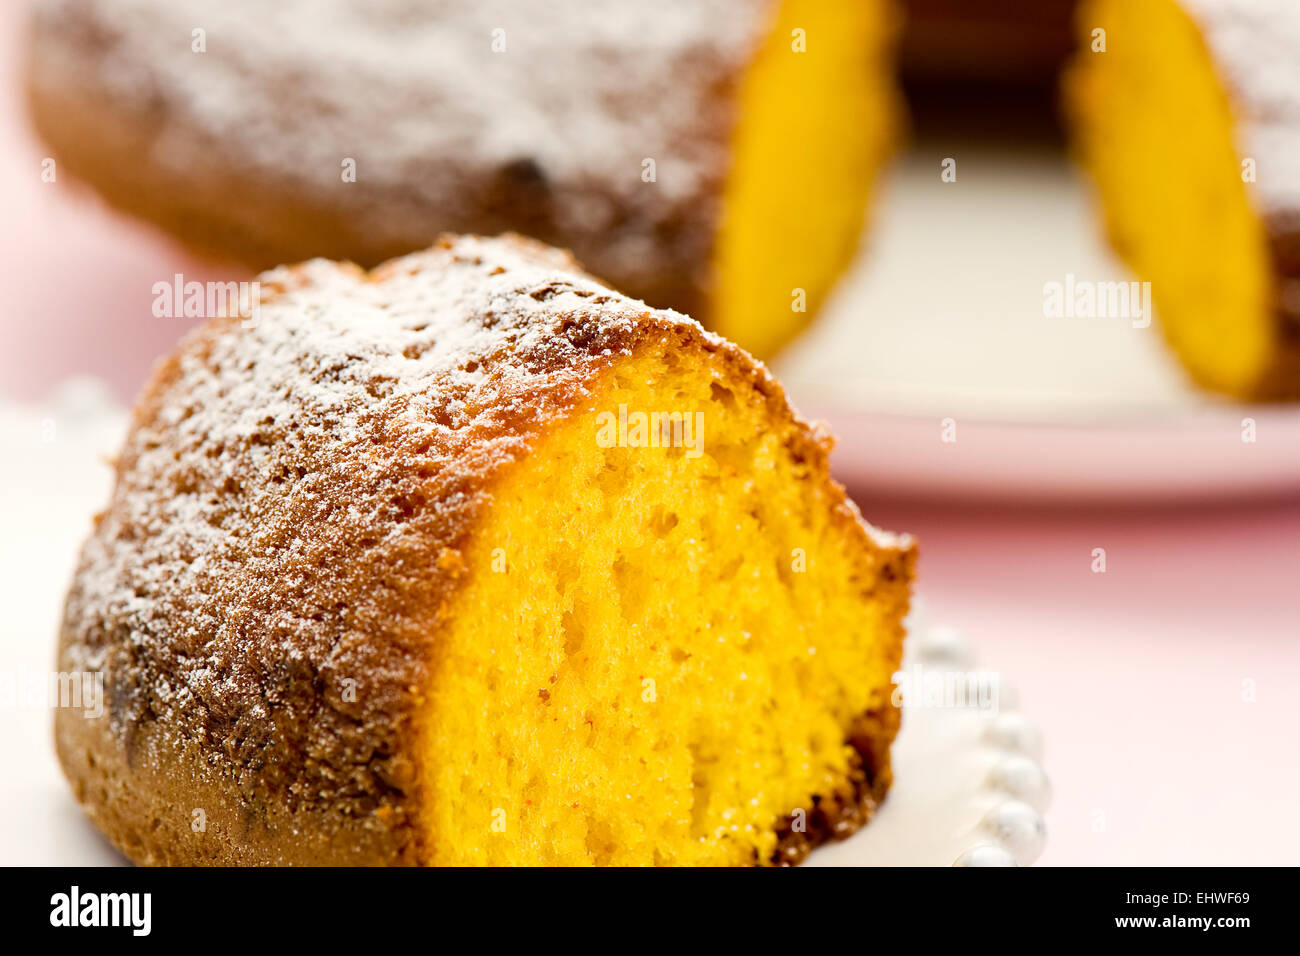 Close up view showing the texture of a slice of freshly baked ring cake on a plate with the cake behind - Stock Image